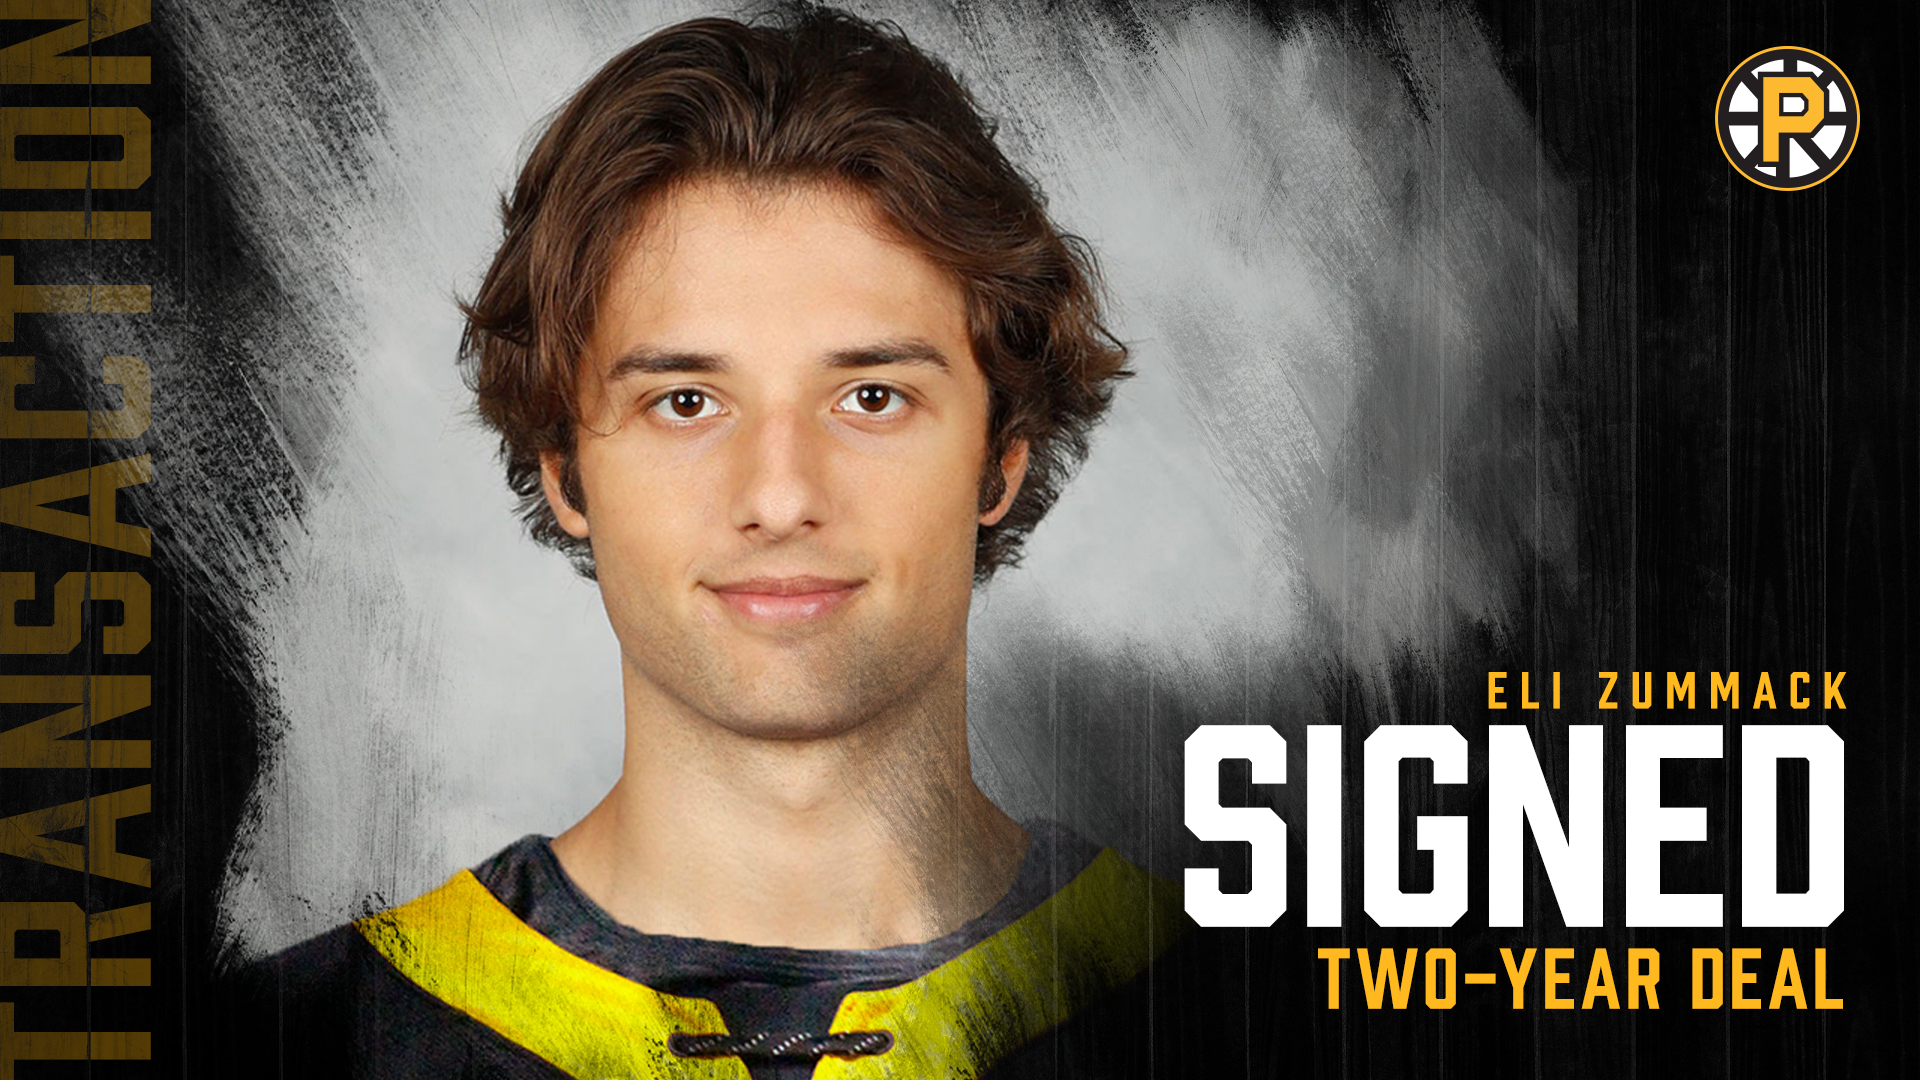 PROVIDENCE BRUINS SIGN ELI ZUMMACK TO TWO-YEAR AHL CONTRACT